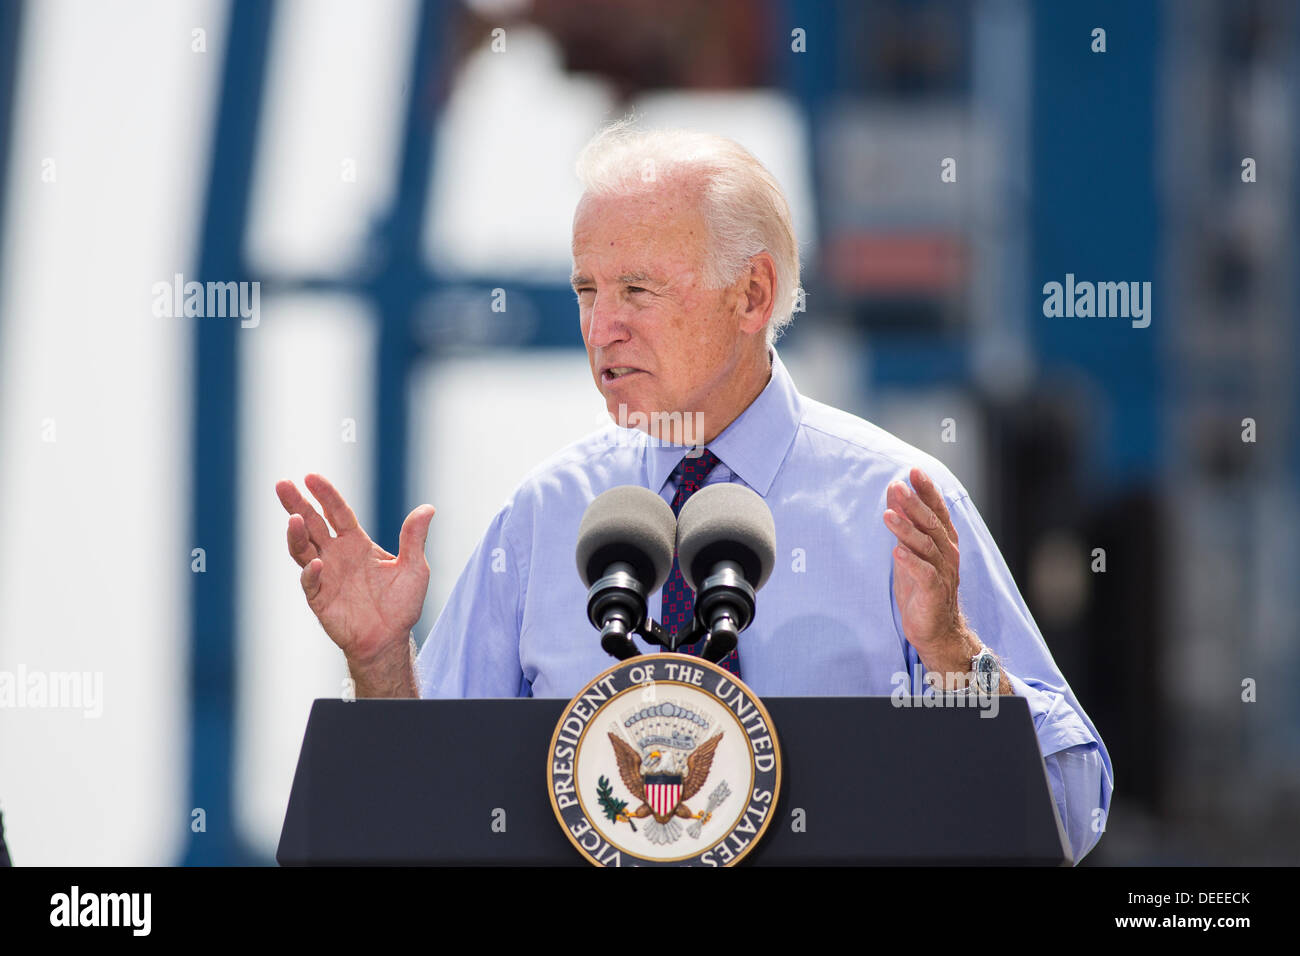 US Vice President Joe Biden addresses a crowd during a visit to Port of Charleston Columbus Container Terminal on September 16, 2013 in Charleston, South Carolina. Biden spoke about the need to improve America's transportation infrastructures for exports and economic growth. - Stock Image